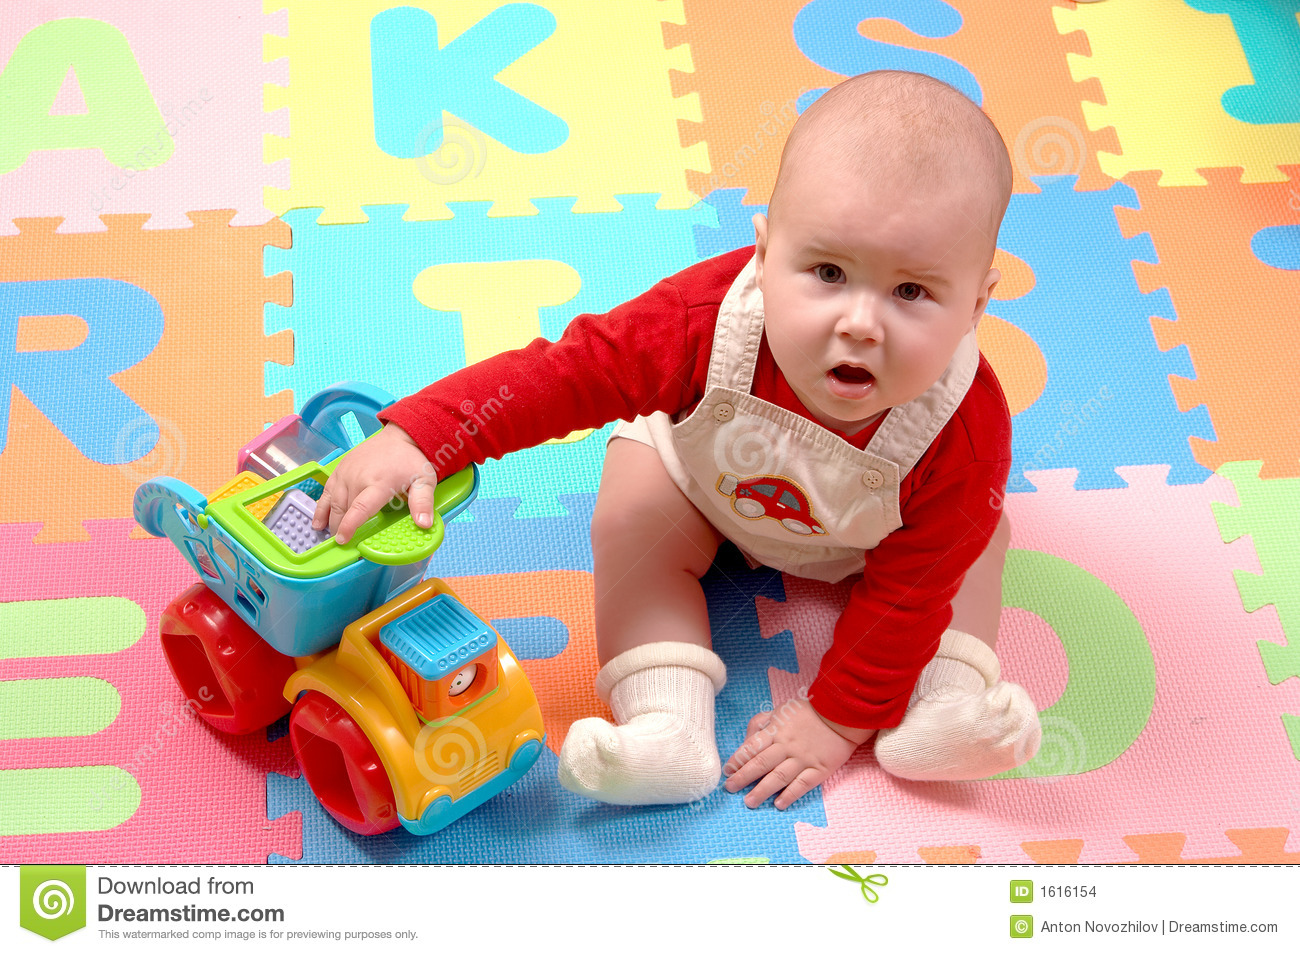 Baby plays with toy car on colourful puzzle tiles